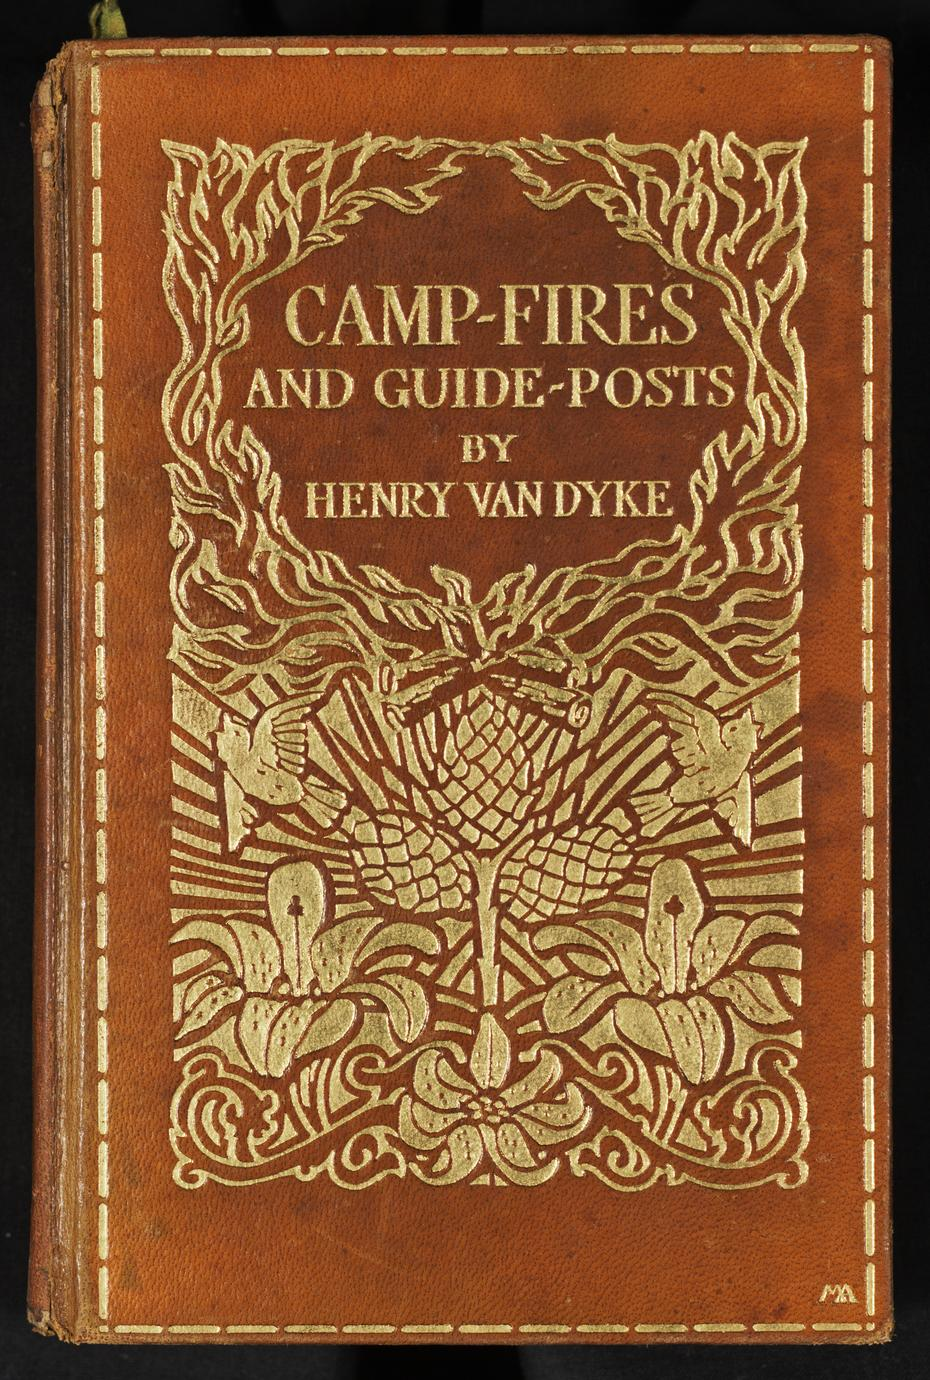 Camp-fires and guide-posts : a book of essays and excursions (1 of 4)